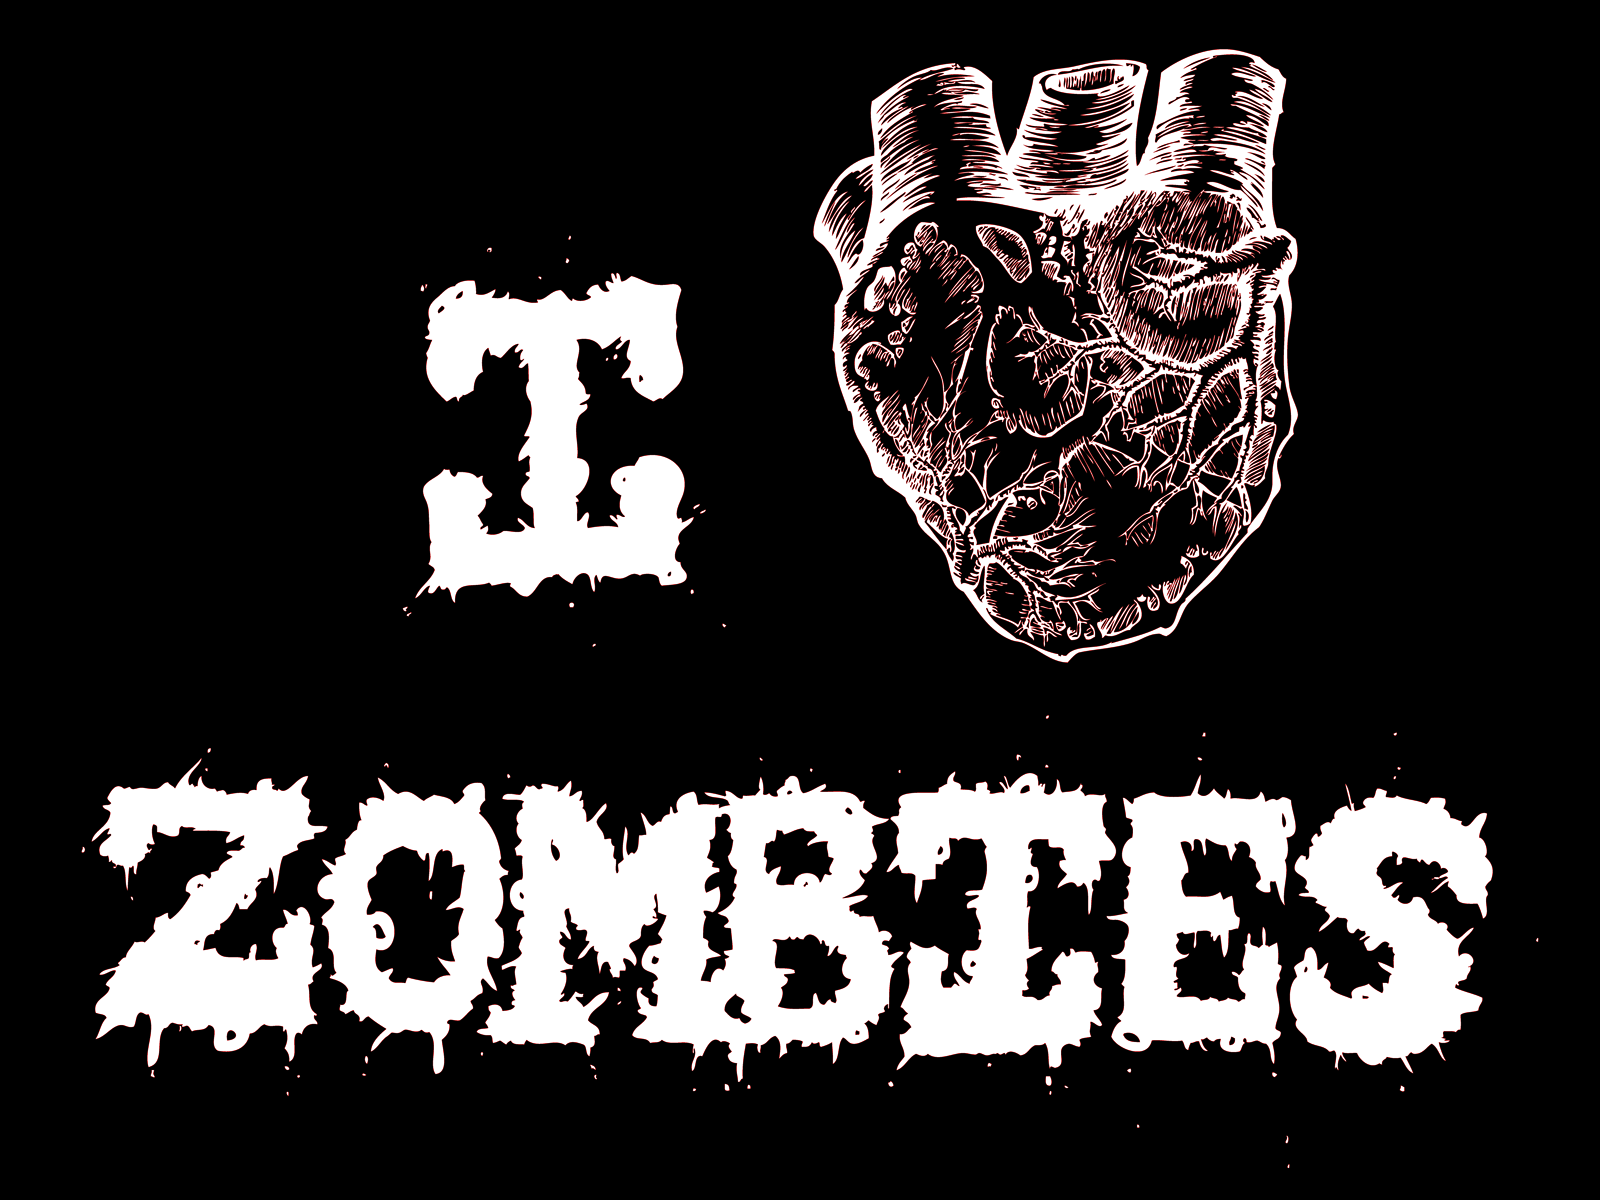 zombie wallpaper HD scary and horror scenery Scary Wallpapers 1600x1200